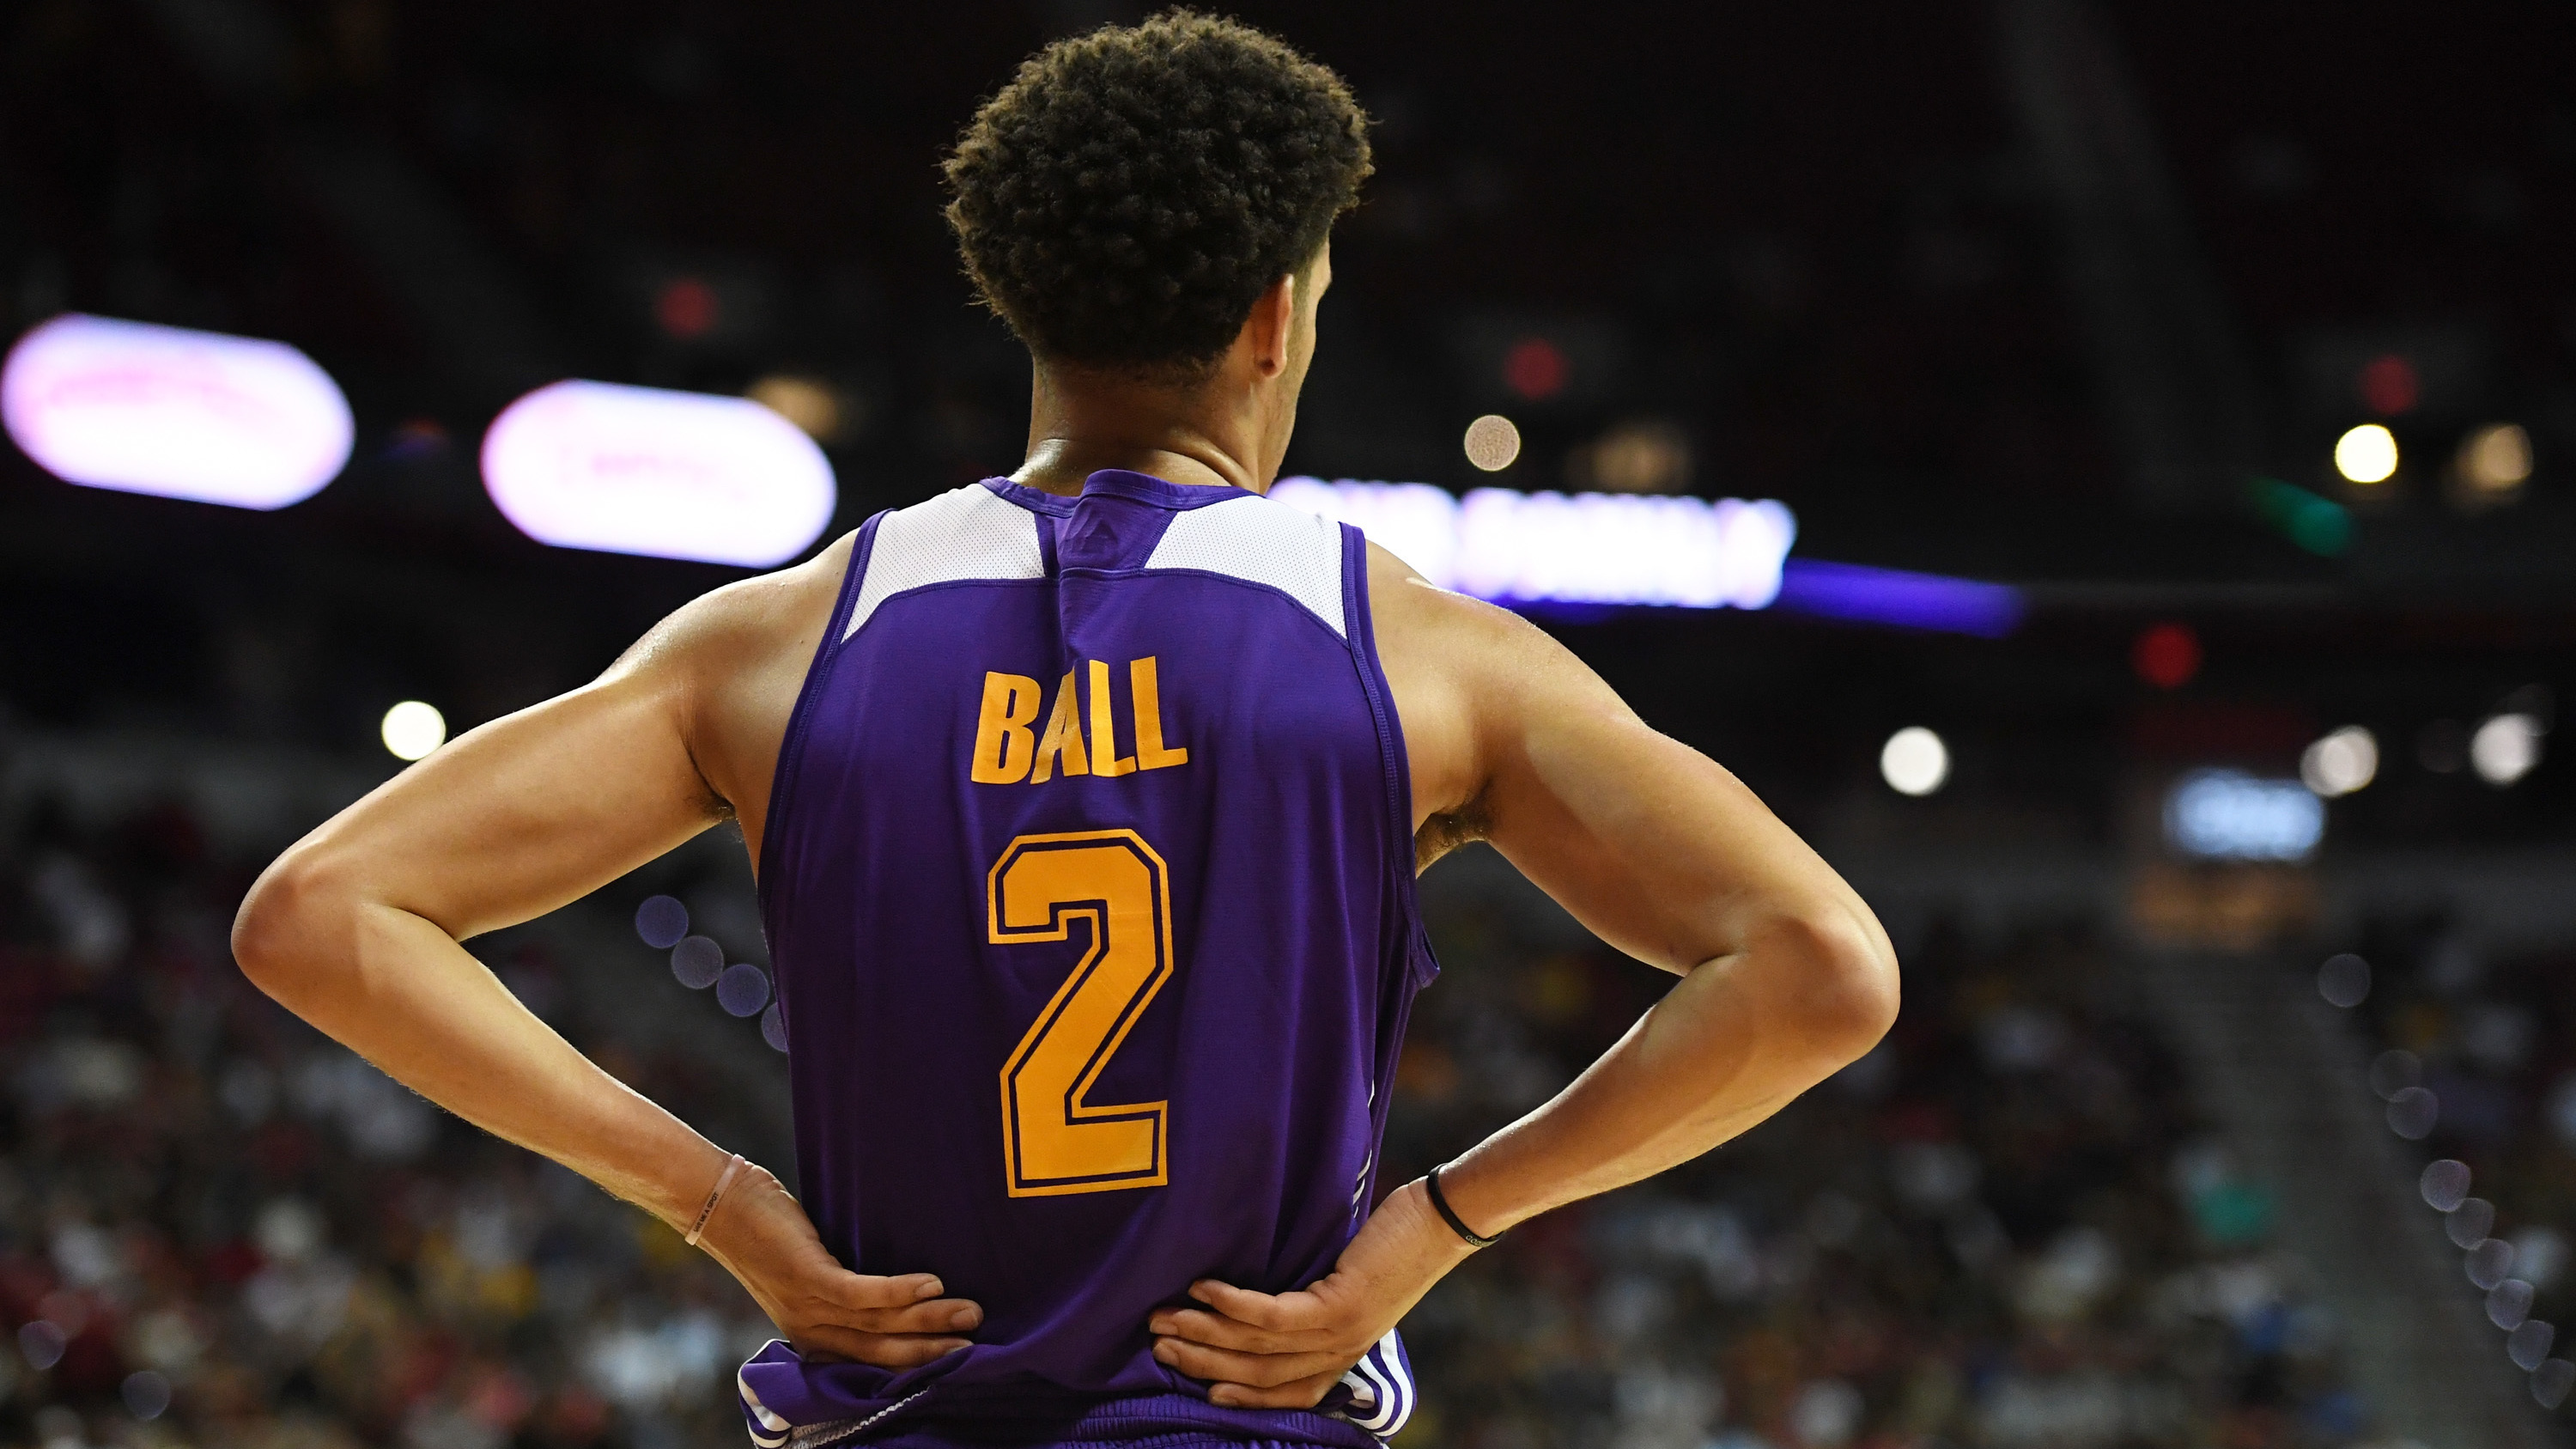 Lonzo Ball of the Los Angeles Lakers stands on the court during Saturday